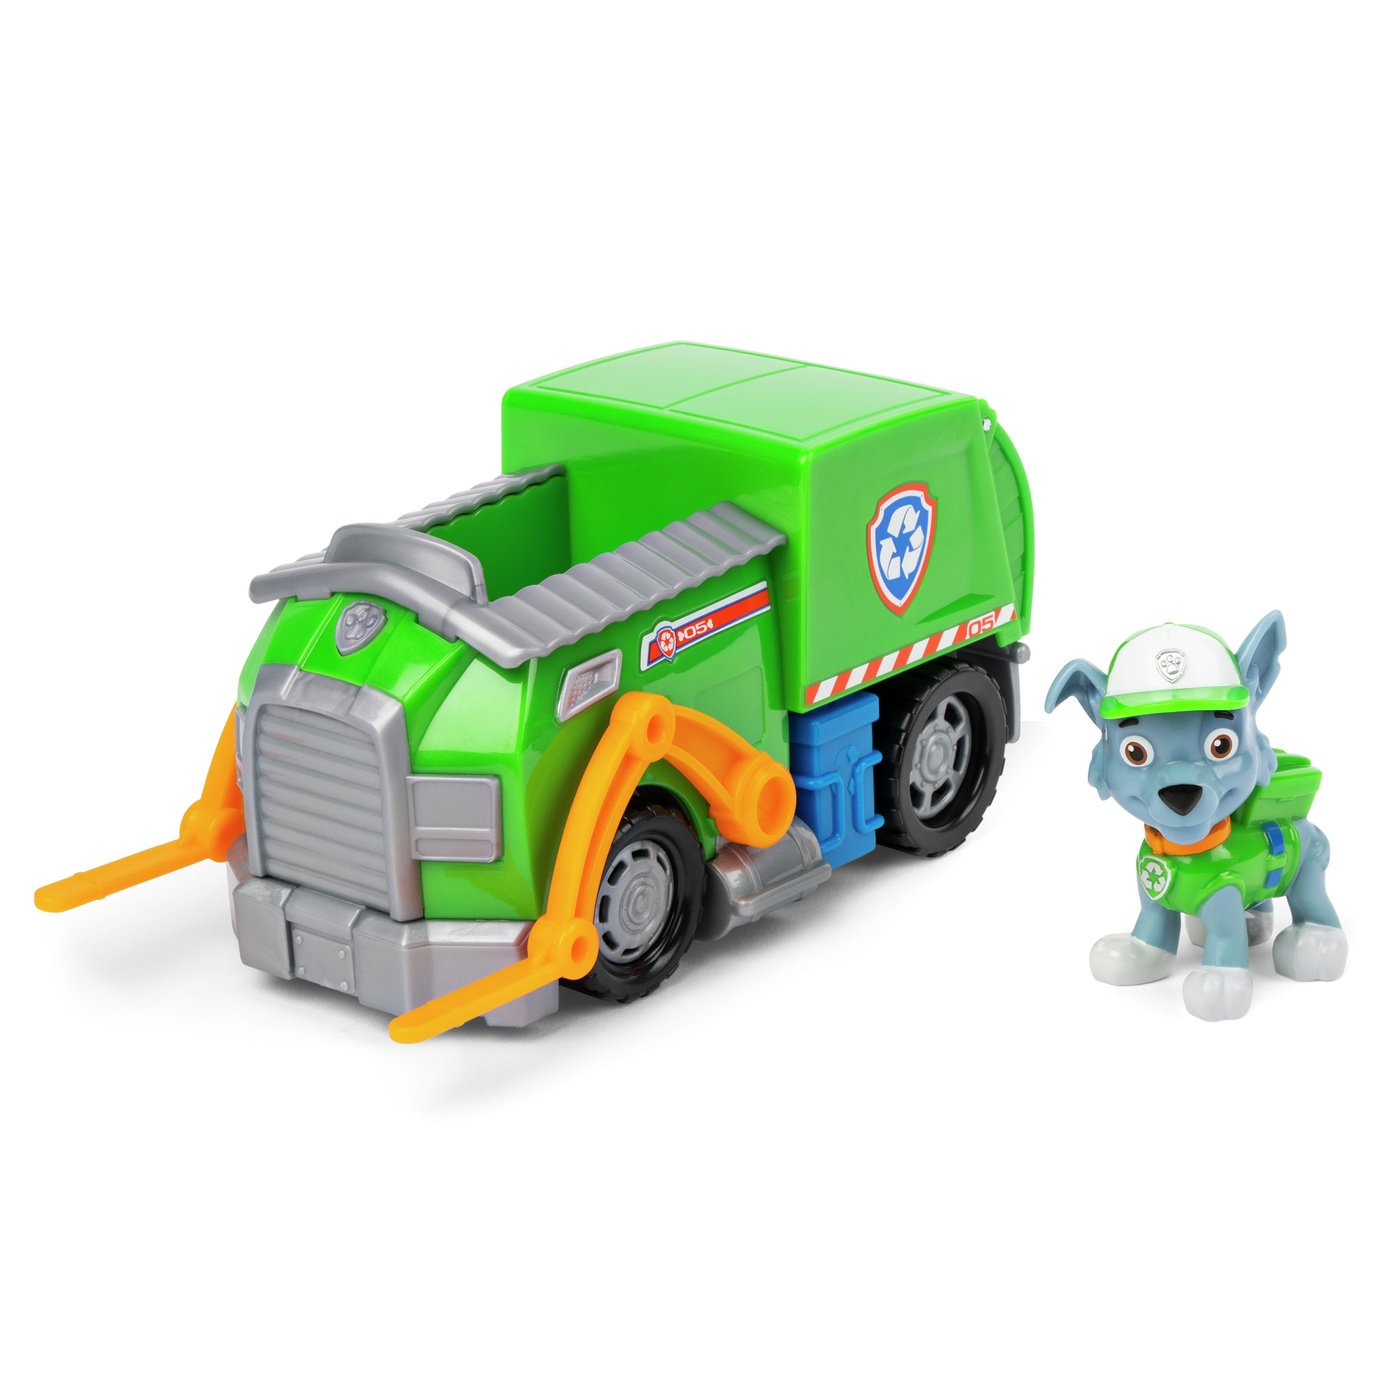 PAW Patrol Rocky and Rocky's Recycling Truck from Paw patrol